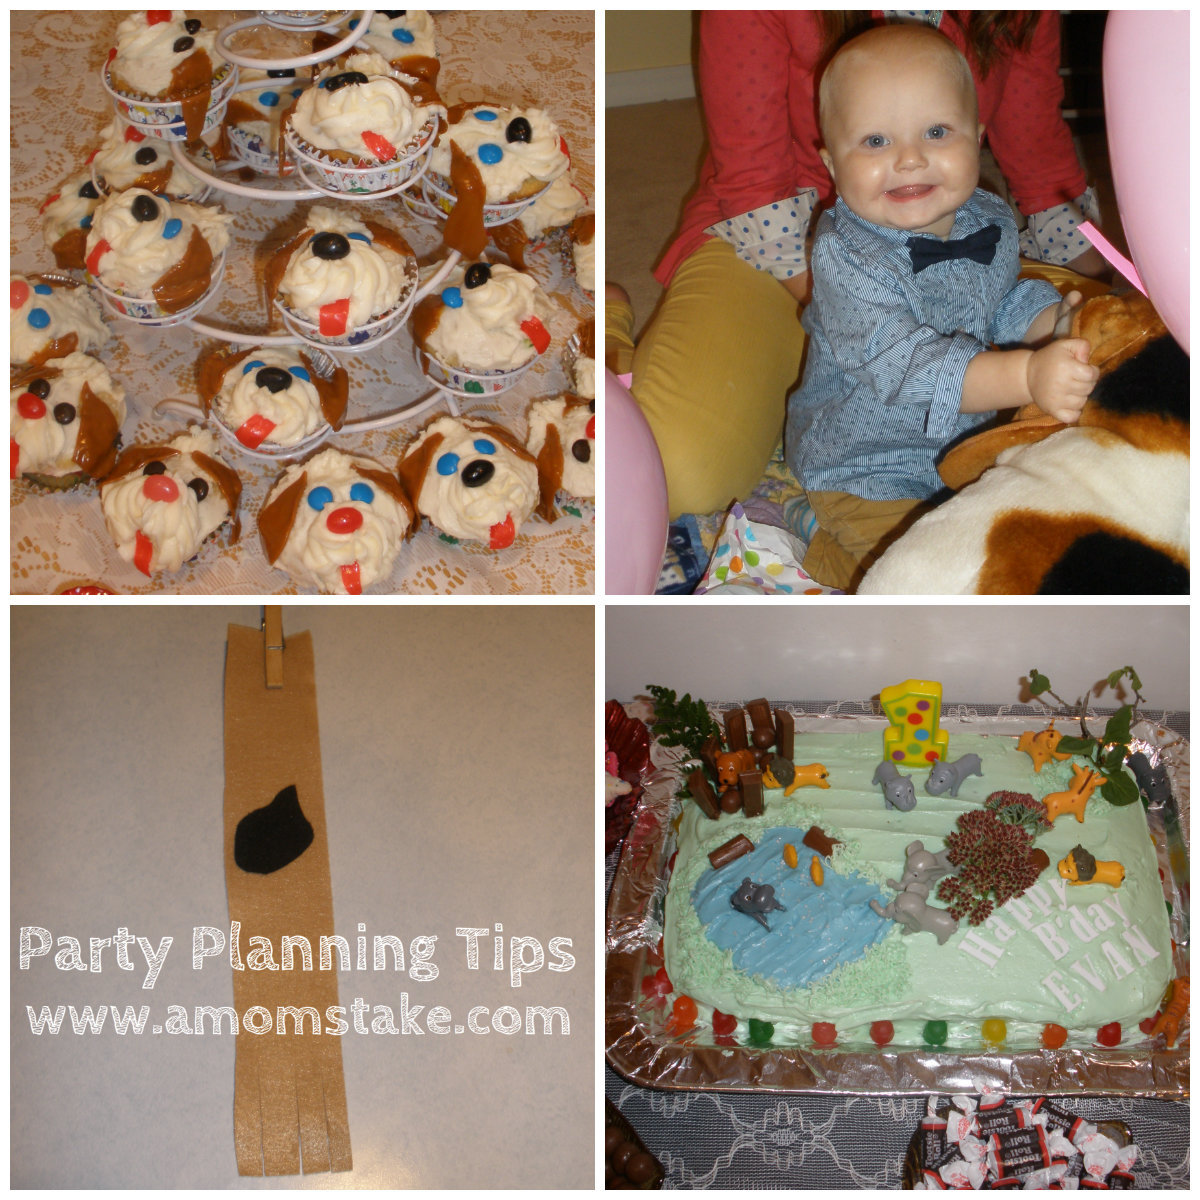 5 party planning tips